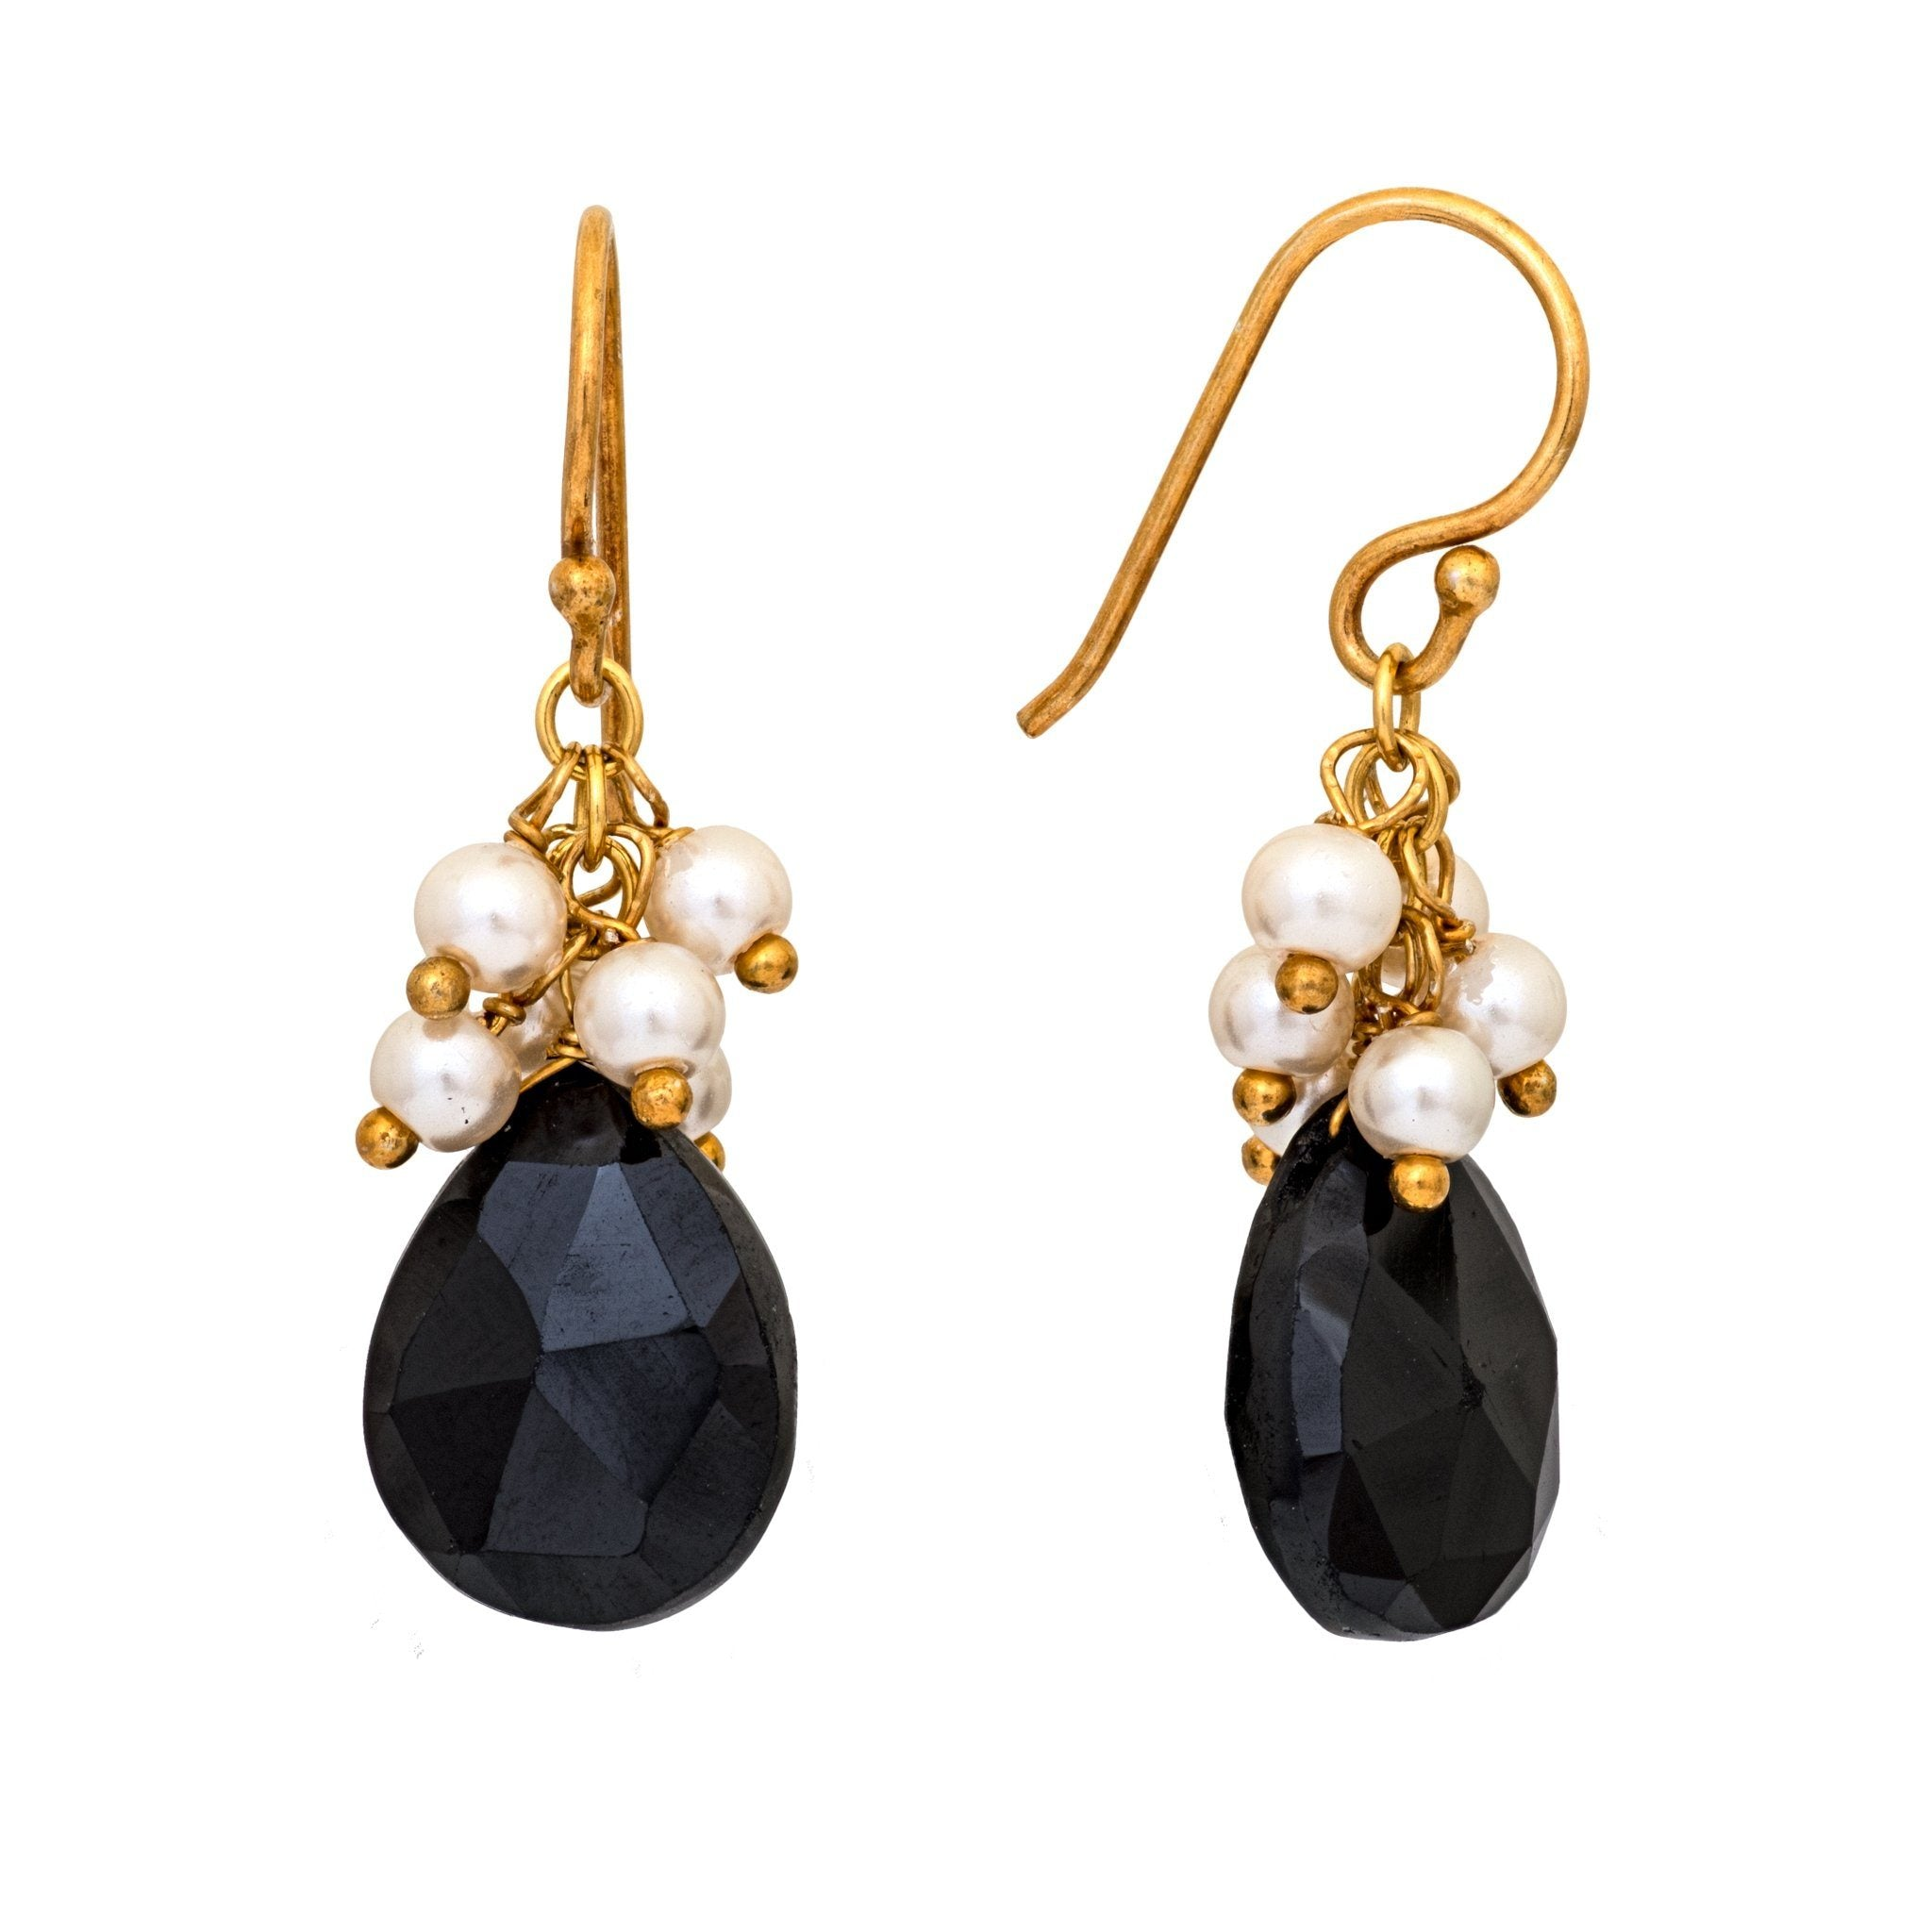 GRAPA black onyx and pearls cluster earrings - MadamSiam